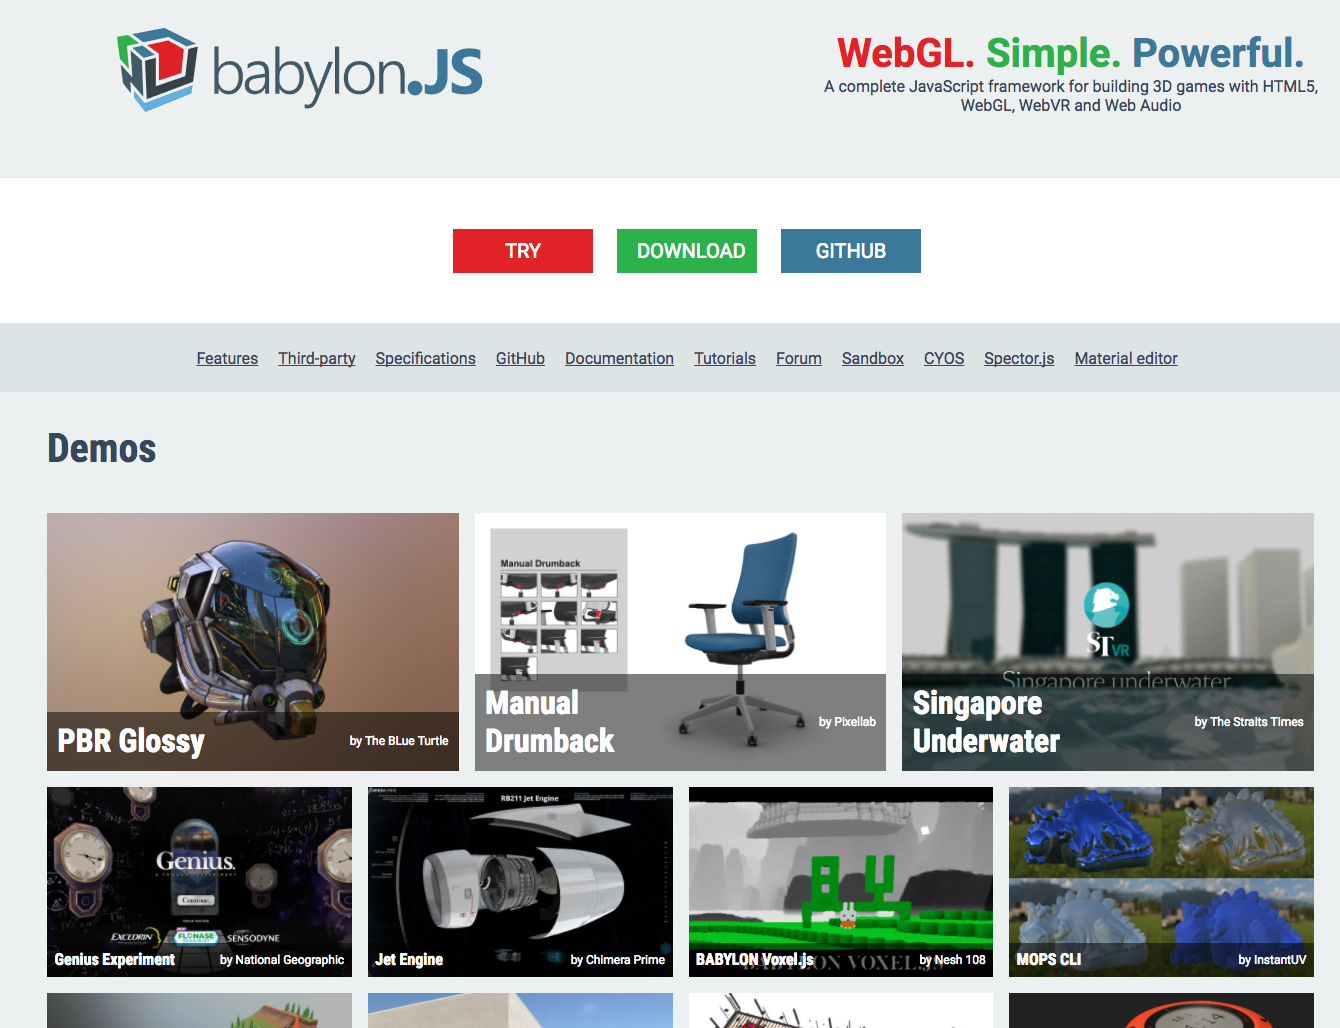 Five Ways To Build WebGL Apps - By